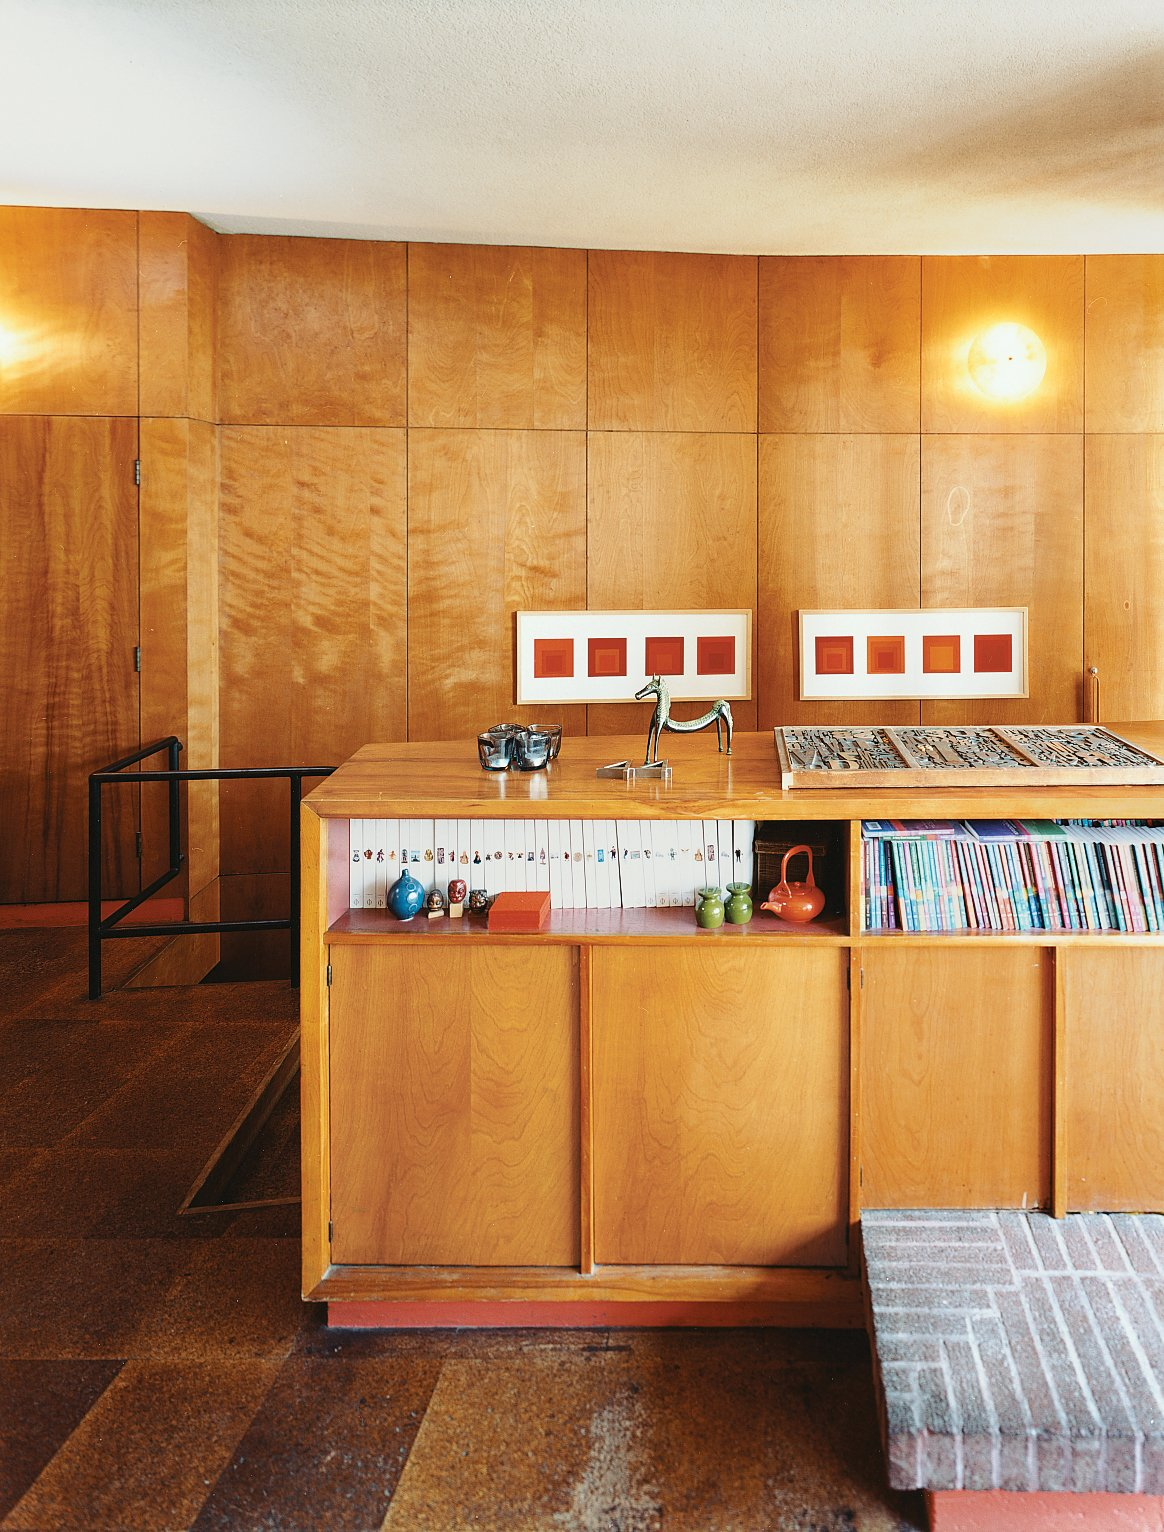 Storage Room and Shelves Storage Type Tidy shelving provides perfect storage for Phaidon's Art and Ideas series. Joseph Albers prints hang in the background.  Photo 7 of 14 in Midcentury Mash-Up